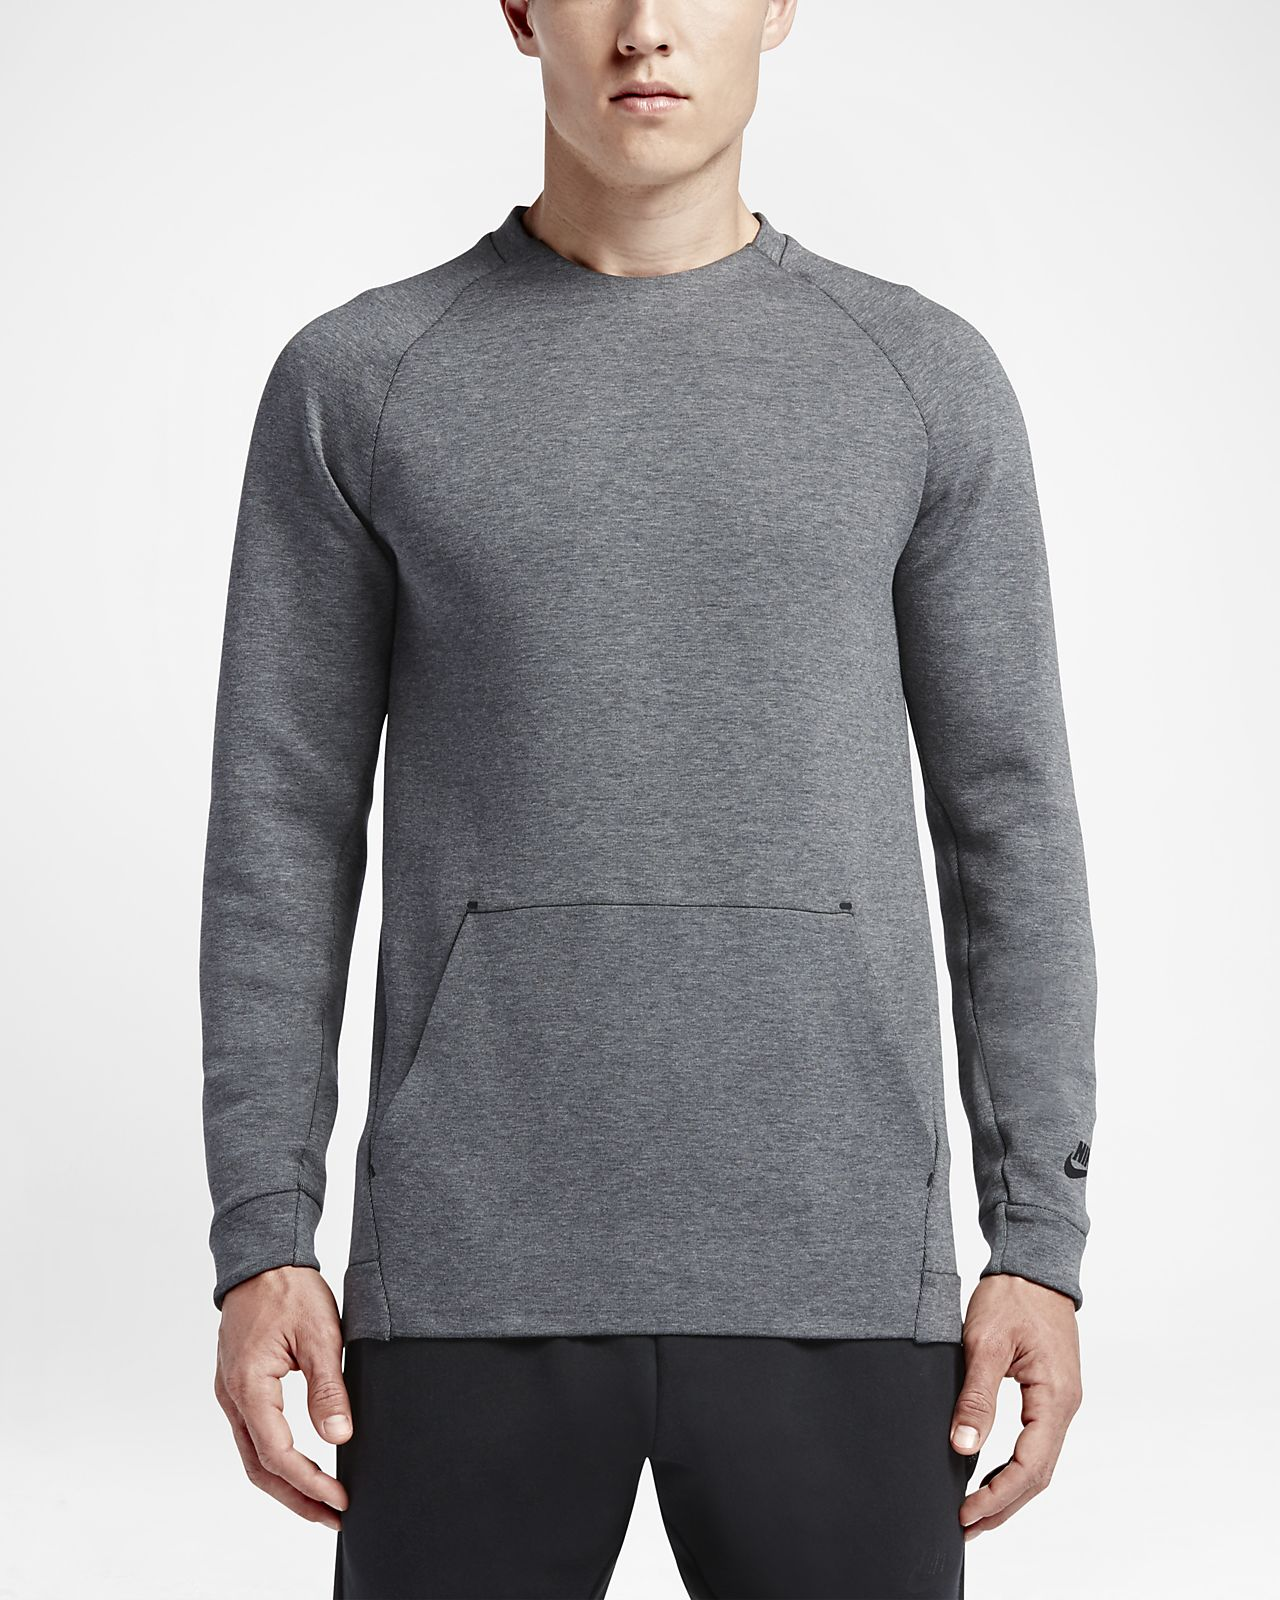 Homme Crew Shirt Sportswear Pour Ca Tech Fleece Sweat Nike Xx0SCwqw1